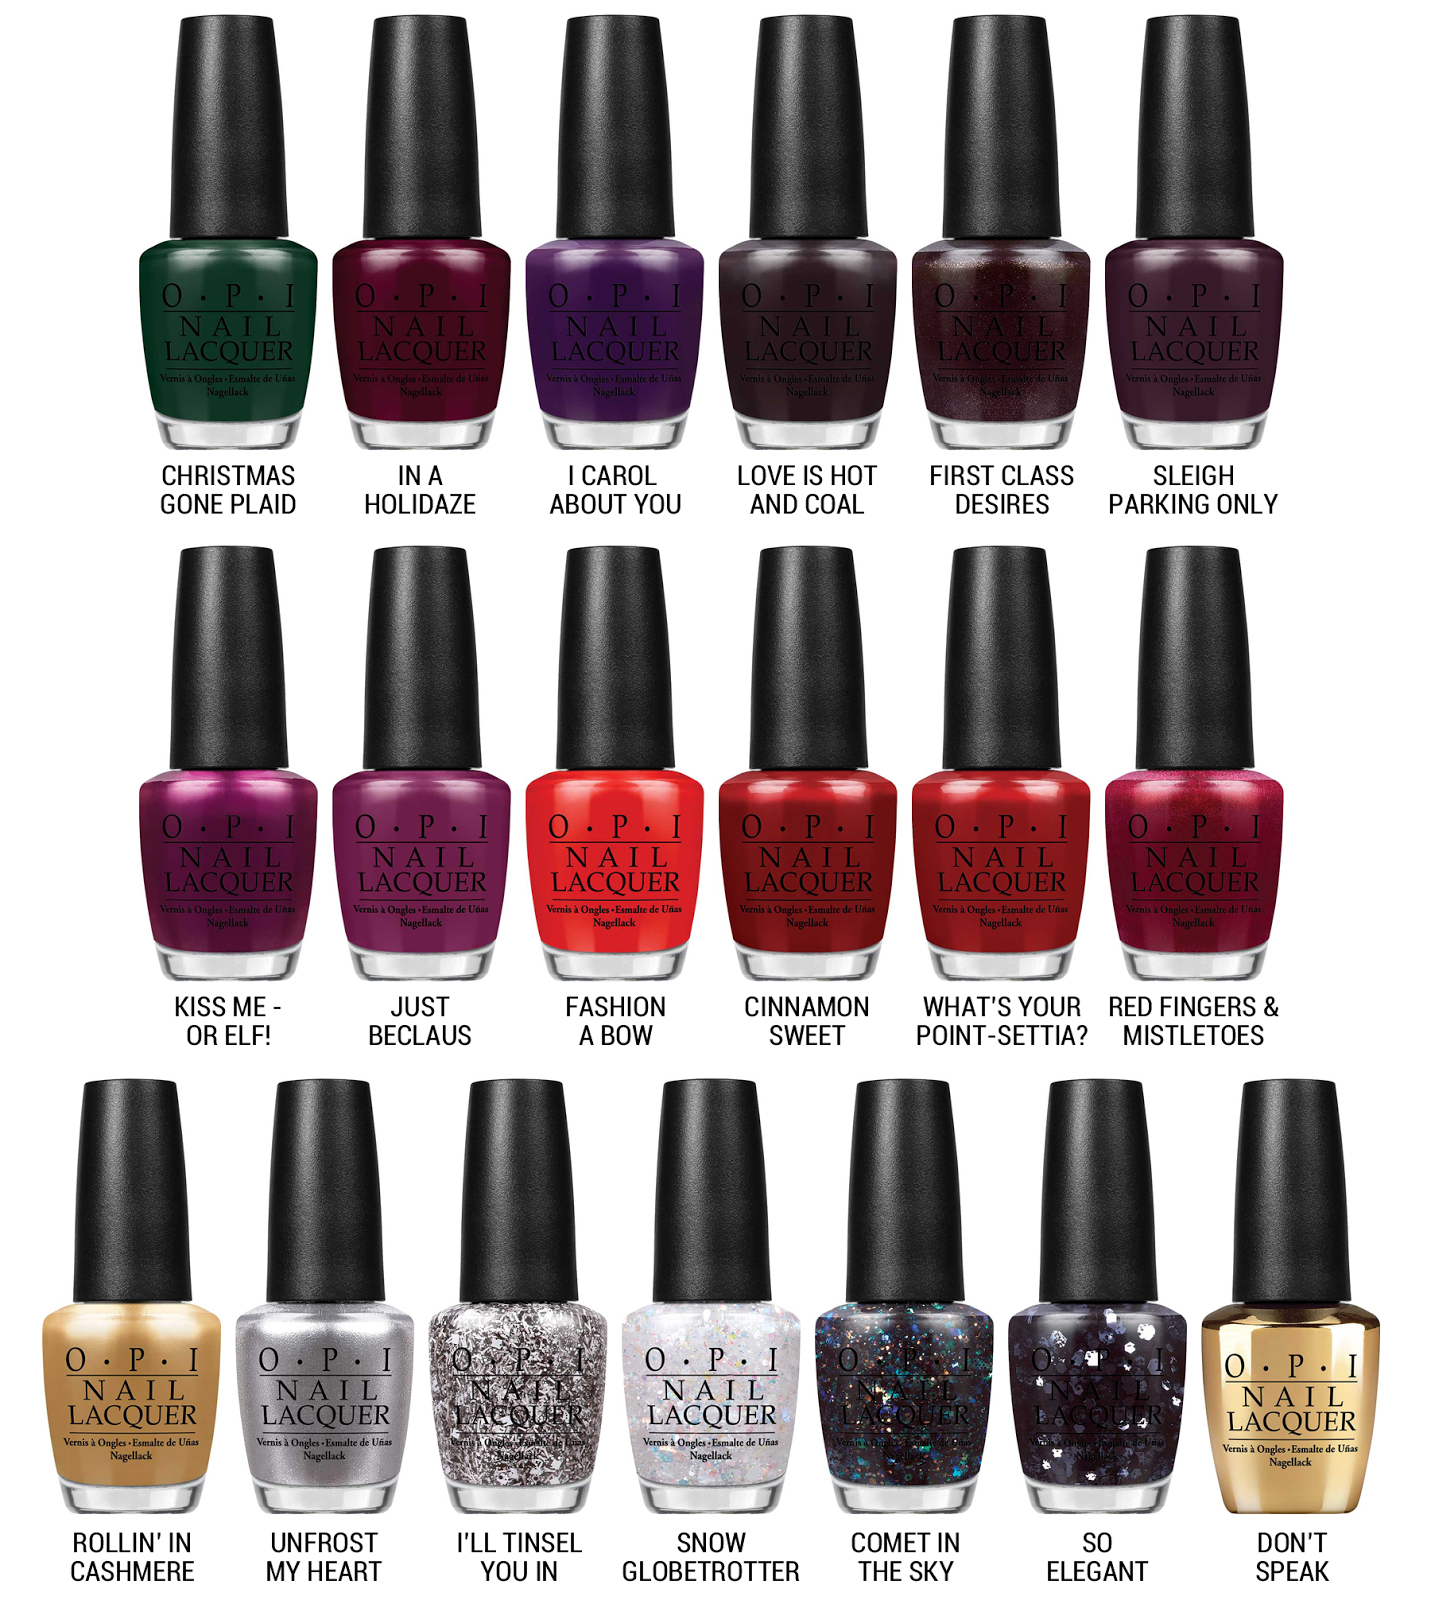 OPI x Gwen Stefani for Holiday 2014 | Holiday 2014, Gwen stefani and OPI